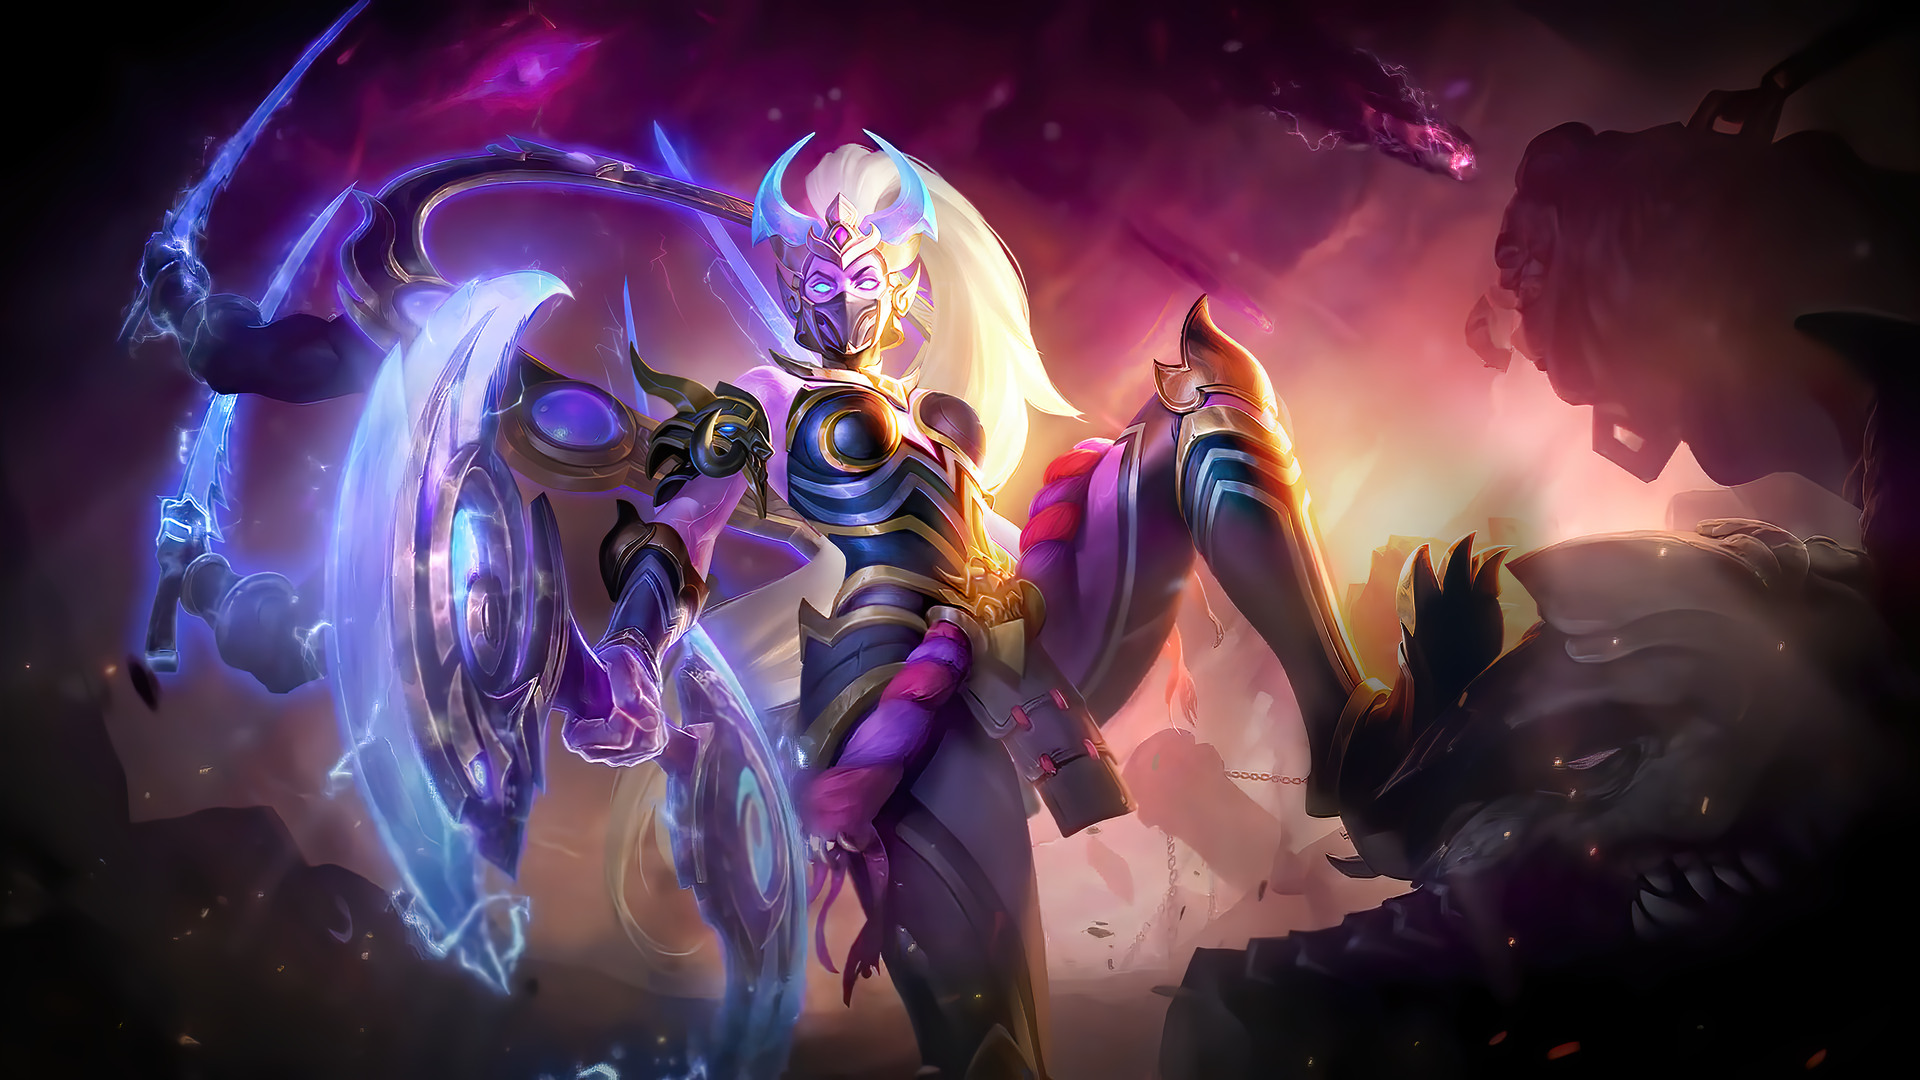 How to use VPN Mobile Legends without lag